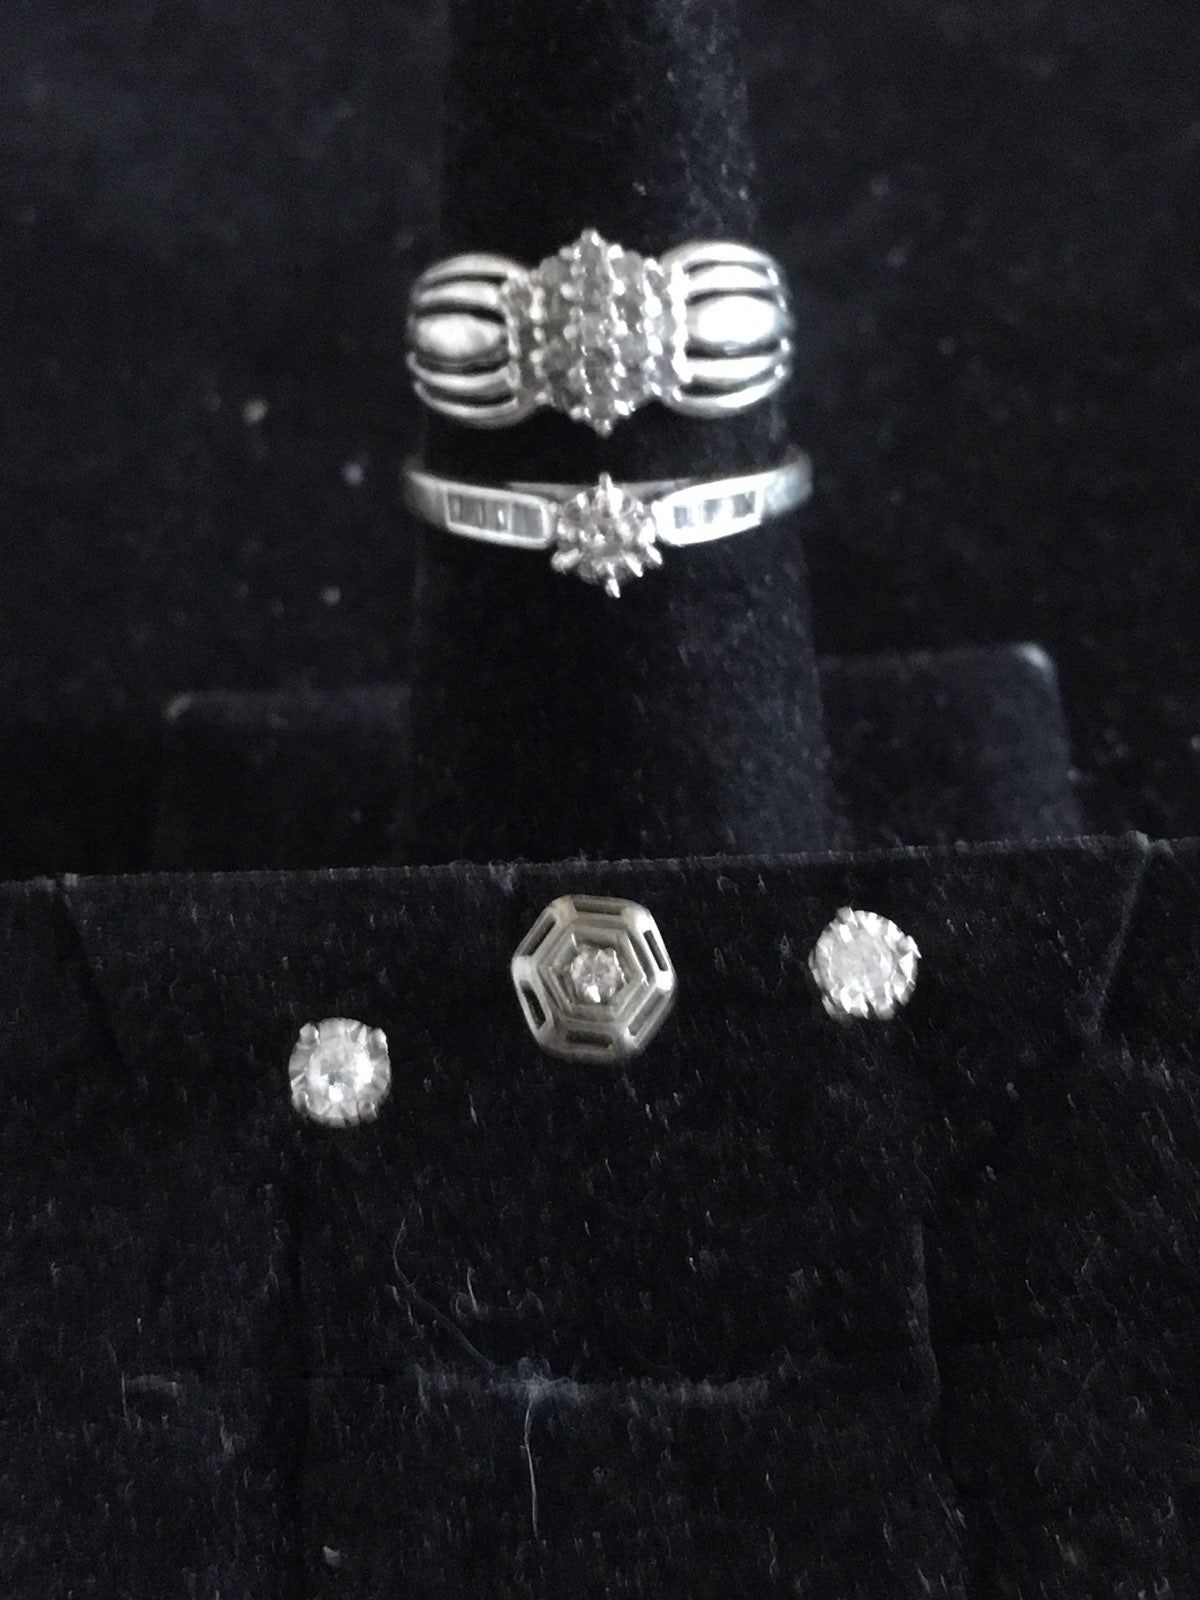 Have A Very Nice Set Of 14 Karat And 10 Karat White Gold With Diamonds The Clustering Is A Quarter Carat Size 5 And 10kt The Engag Stamped Rings Rings Diamond